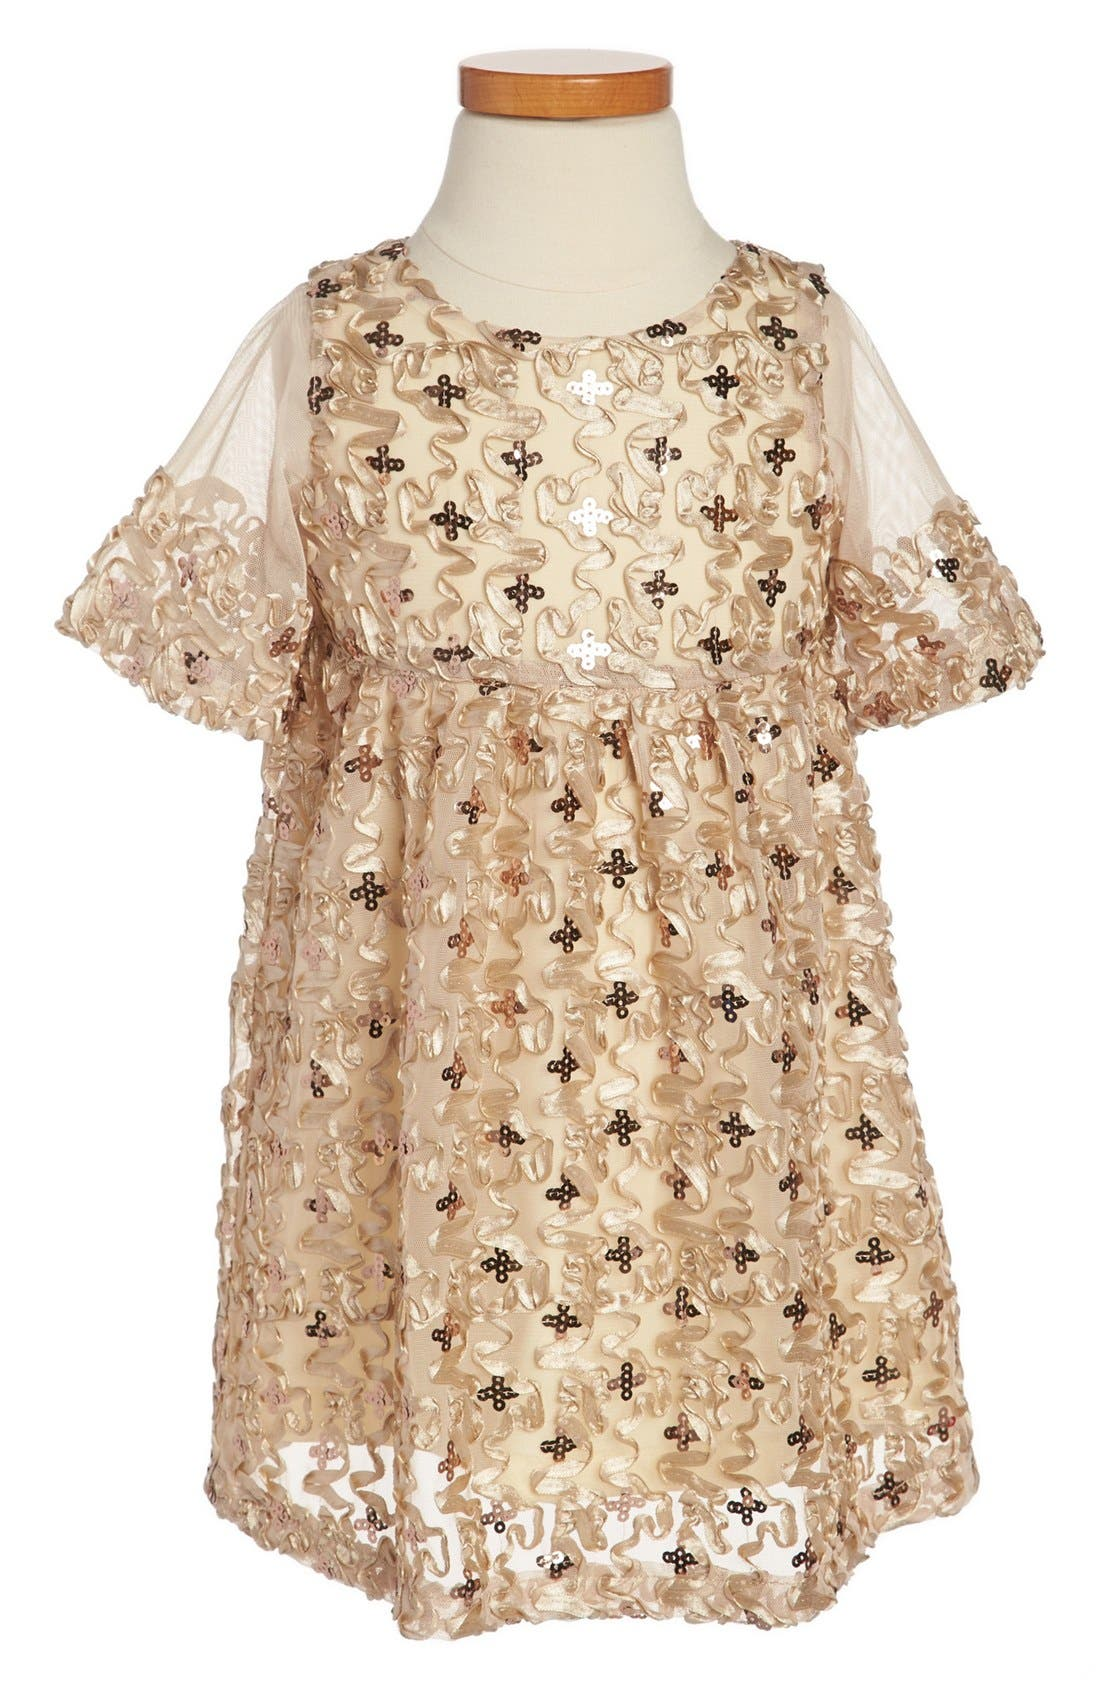 Main Image - Laundry by Shelli Segal Sequin Dress (Toddler Girls)